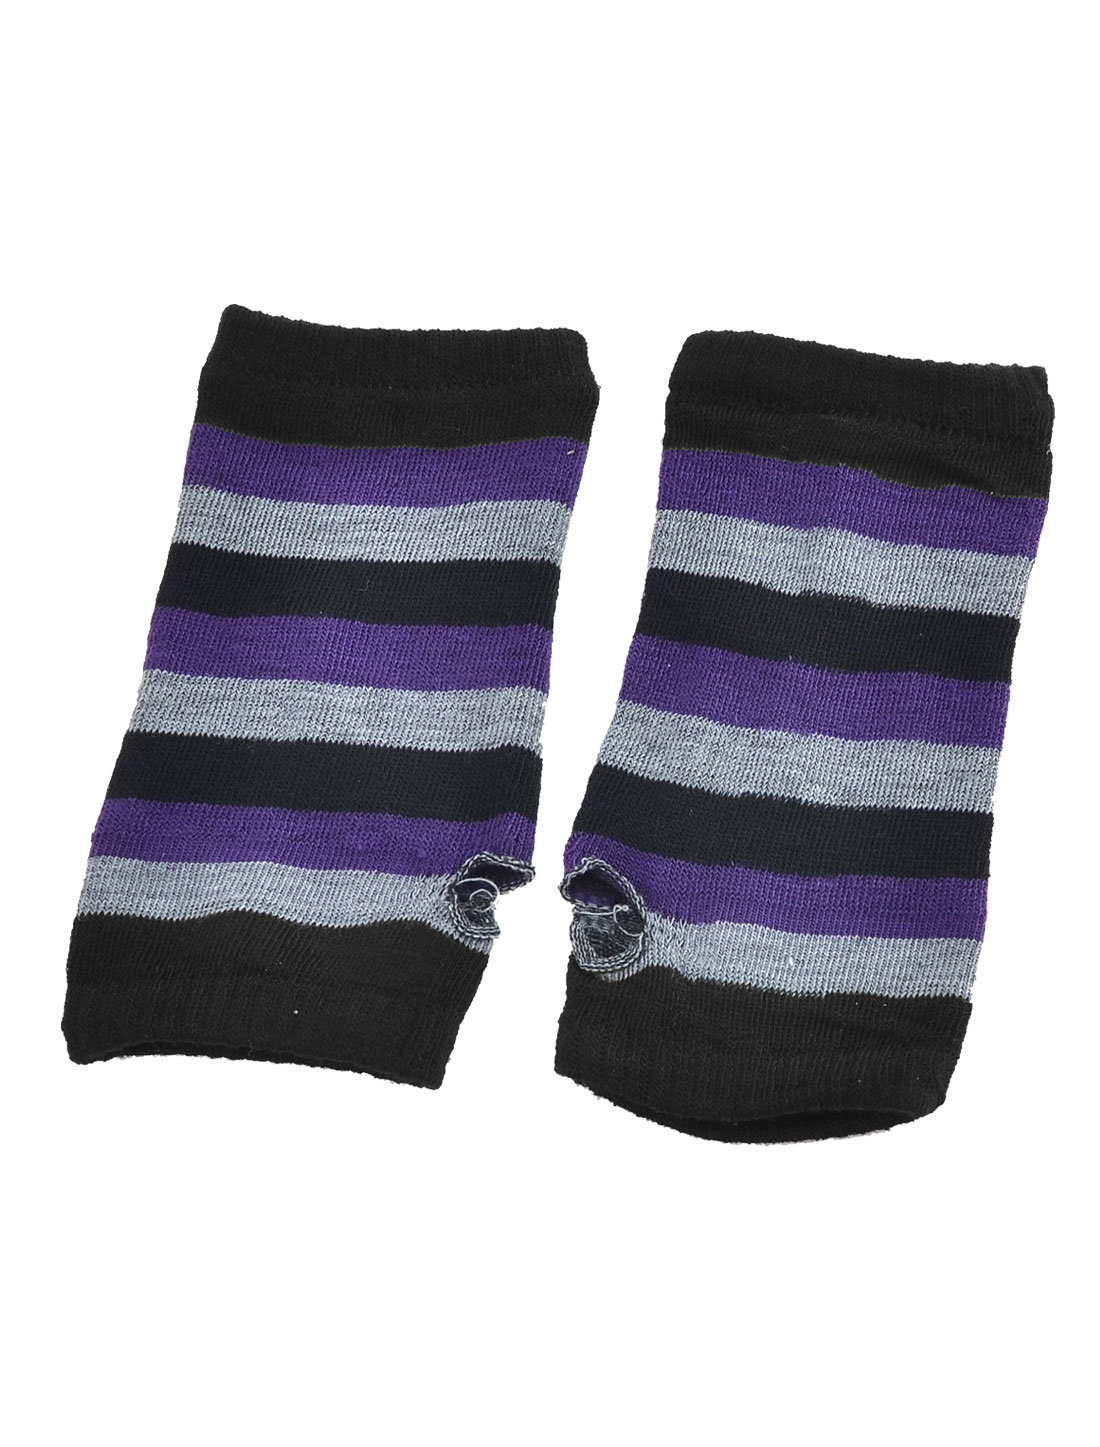 Women Stripe Pattern Elastic Fingerless Mitten Gloves Black Gray Purple Pair